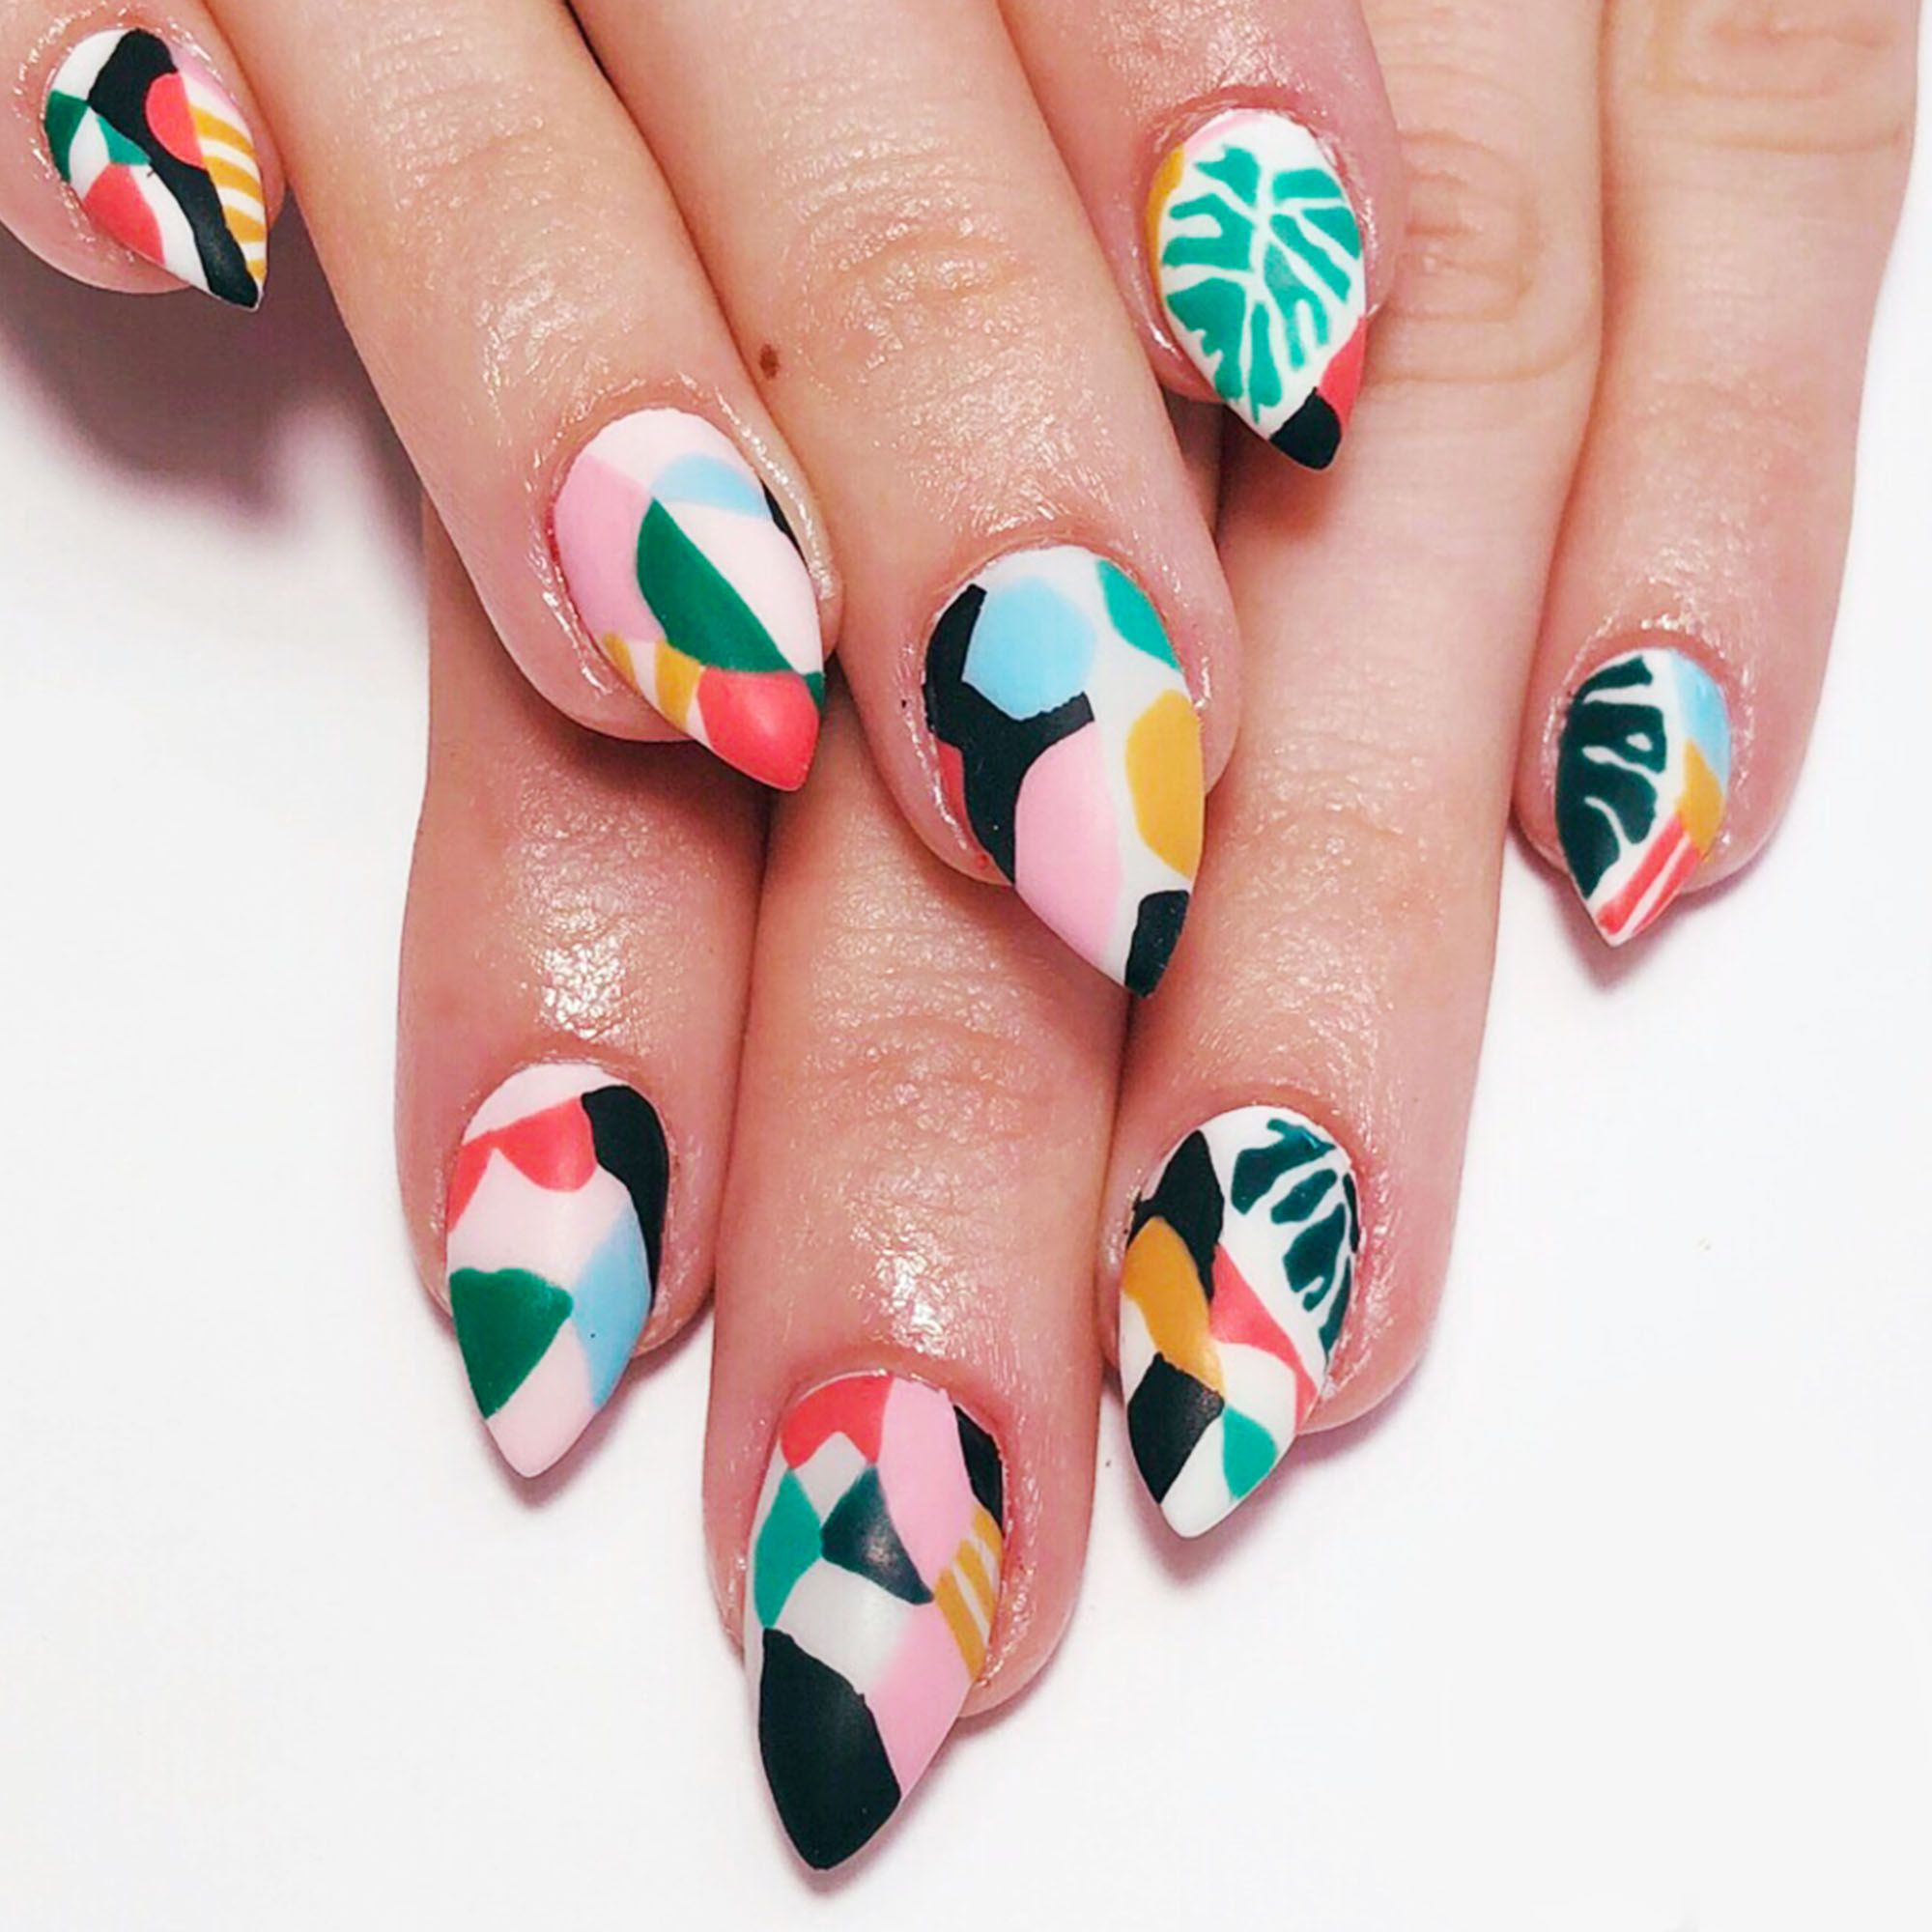 20 Cool Summer Nail Art Designs